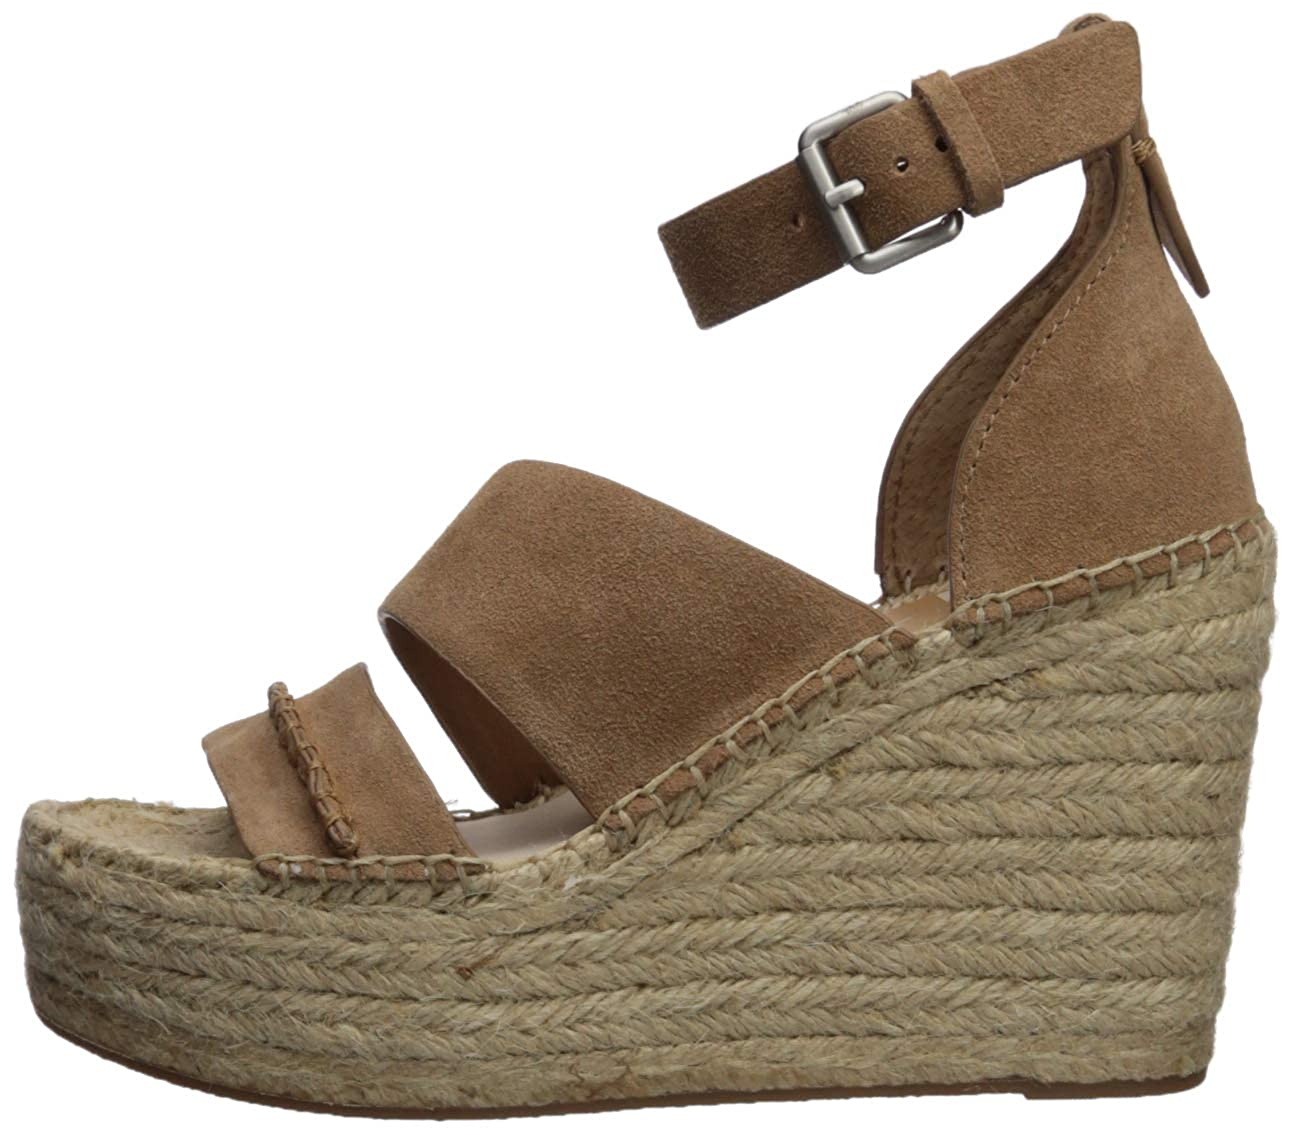 228e54210cd Dolce vita womens simi espadrille wedge sandal shoes jpg 1295x1135 Dolce  vita wedge